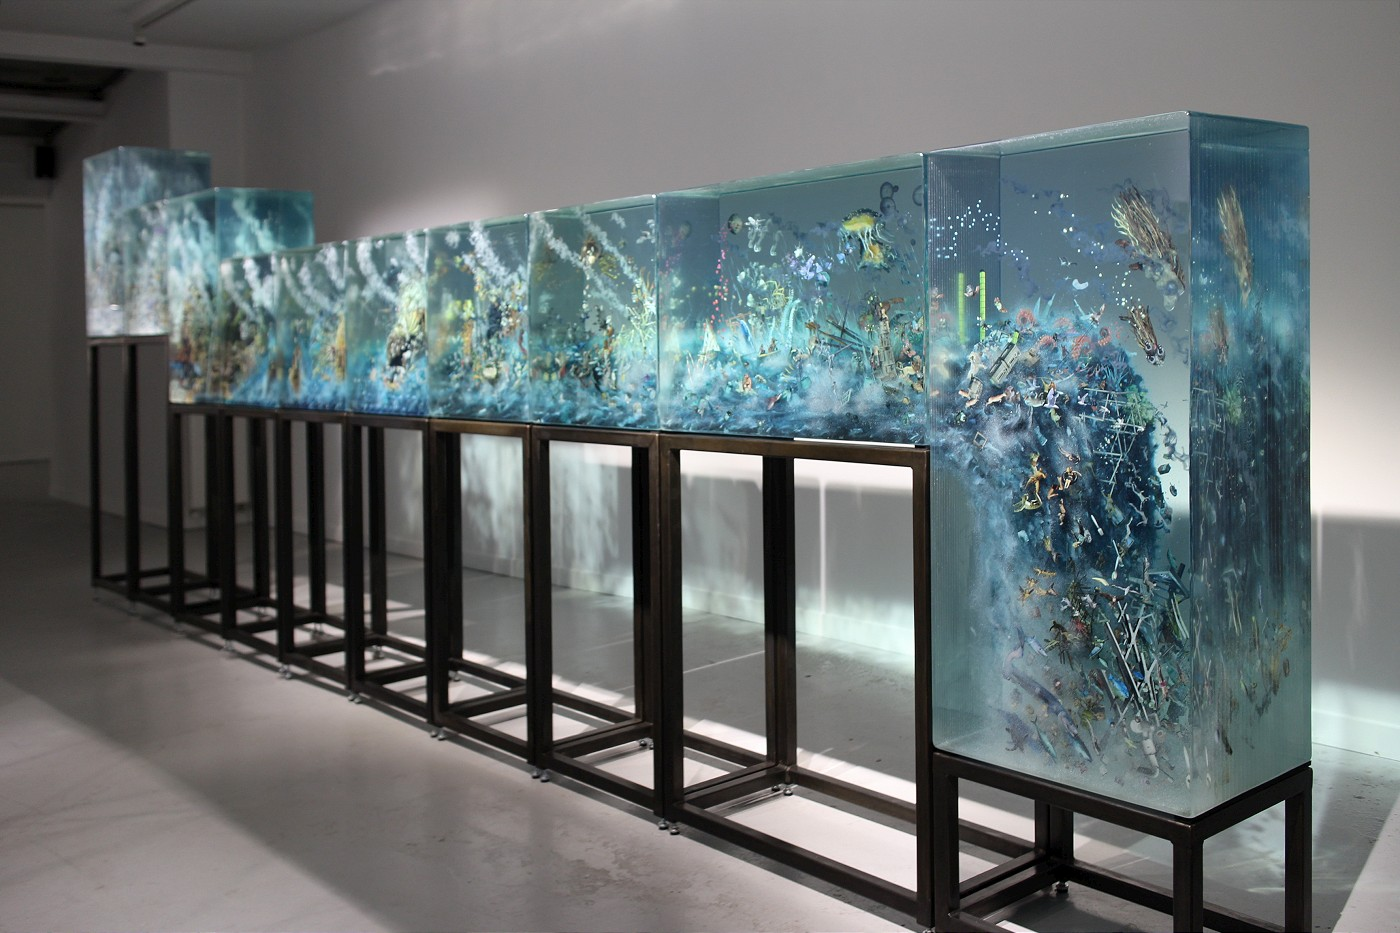 Coinciding With The Amsterdam Art Weekend Grimm Gallery Opened Dustin Yellin S Show 10parts On November 25th A Twenty Foot Long Modular Gl